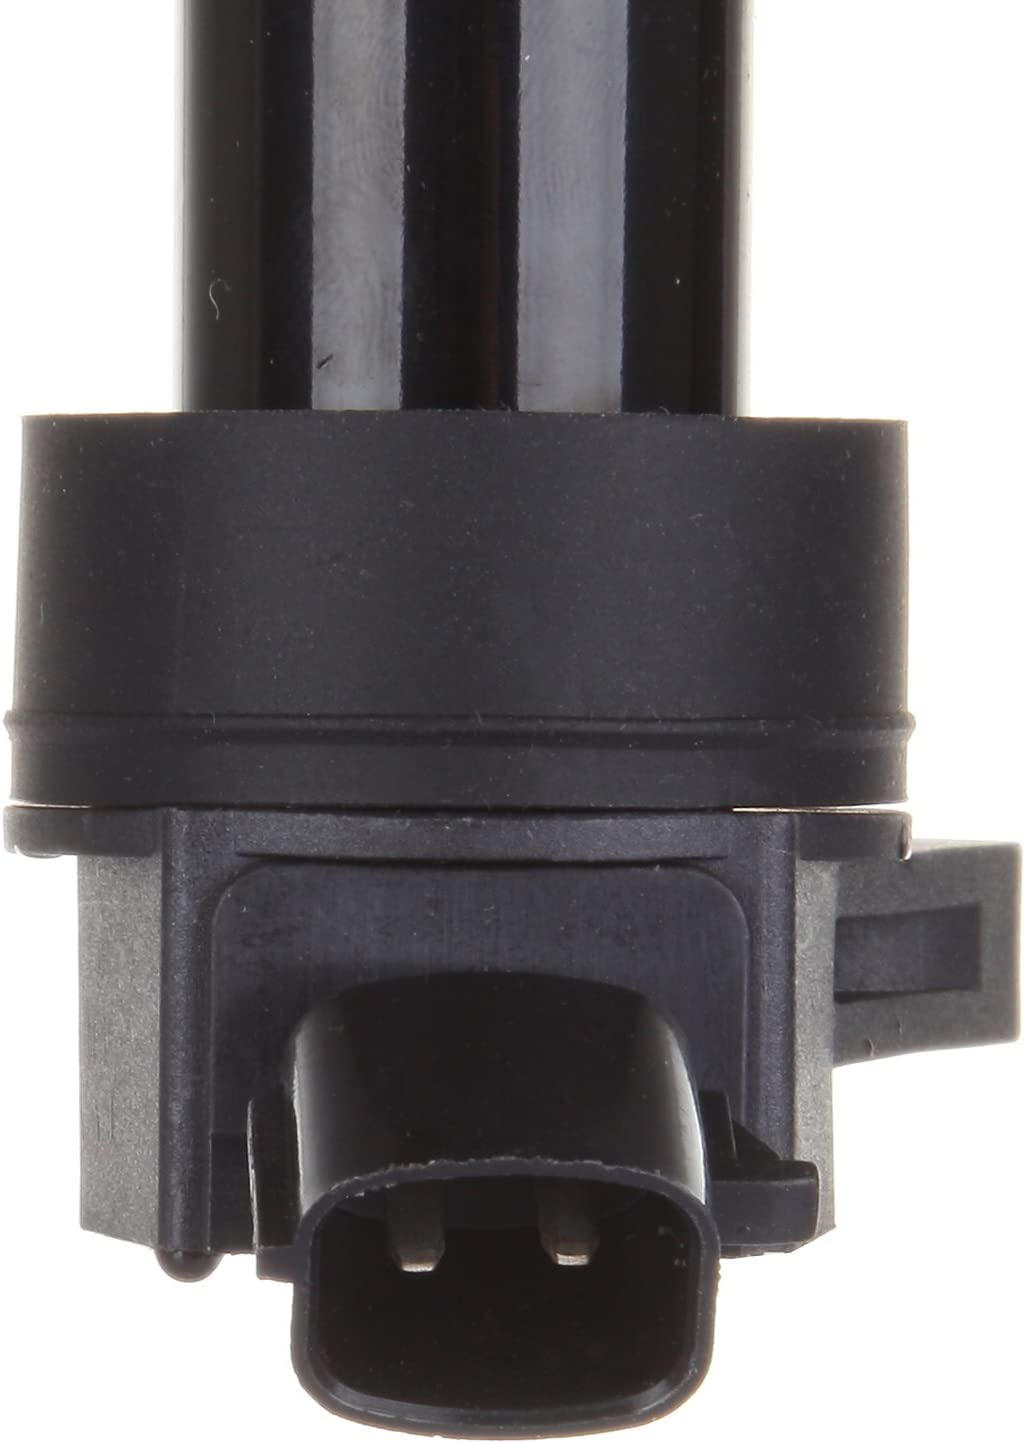 UF651 C1804 FINDAUTO Pack of 4 Ignition Coil Fits for K-ia Soul//Forte H-yundai Tucson//Elantra//Elantra GT 2011-2016 Replacement with OE